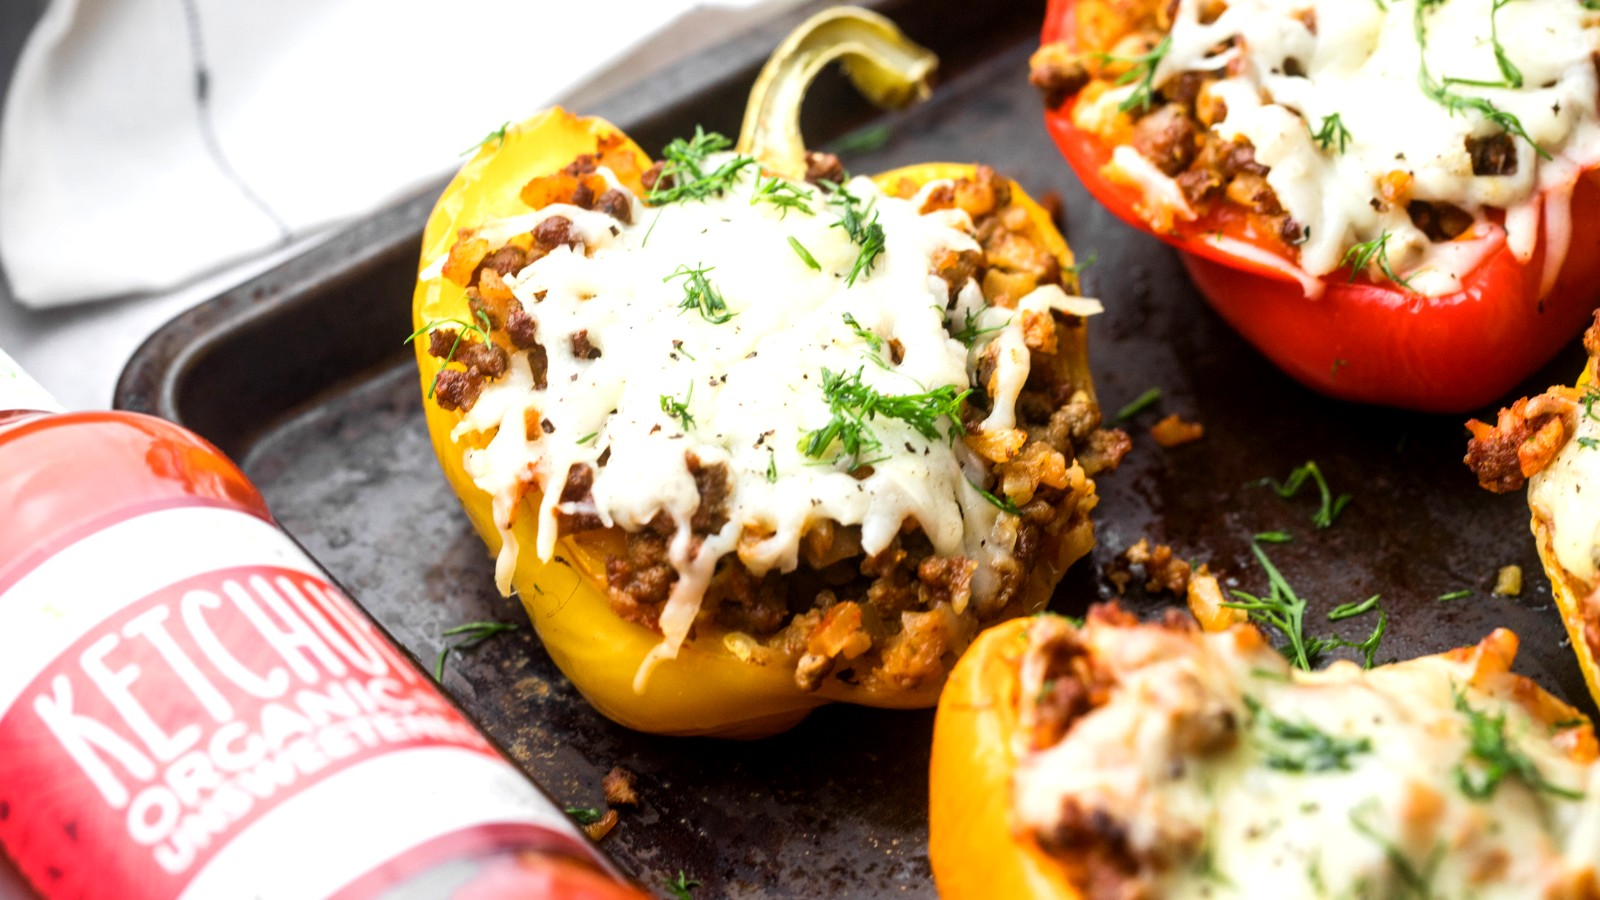 Image of Cheeseburger Stuffed Bell Peppers